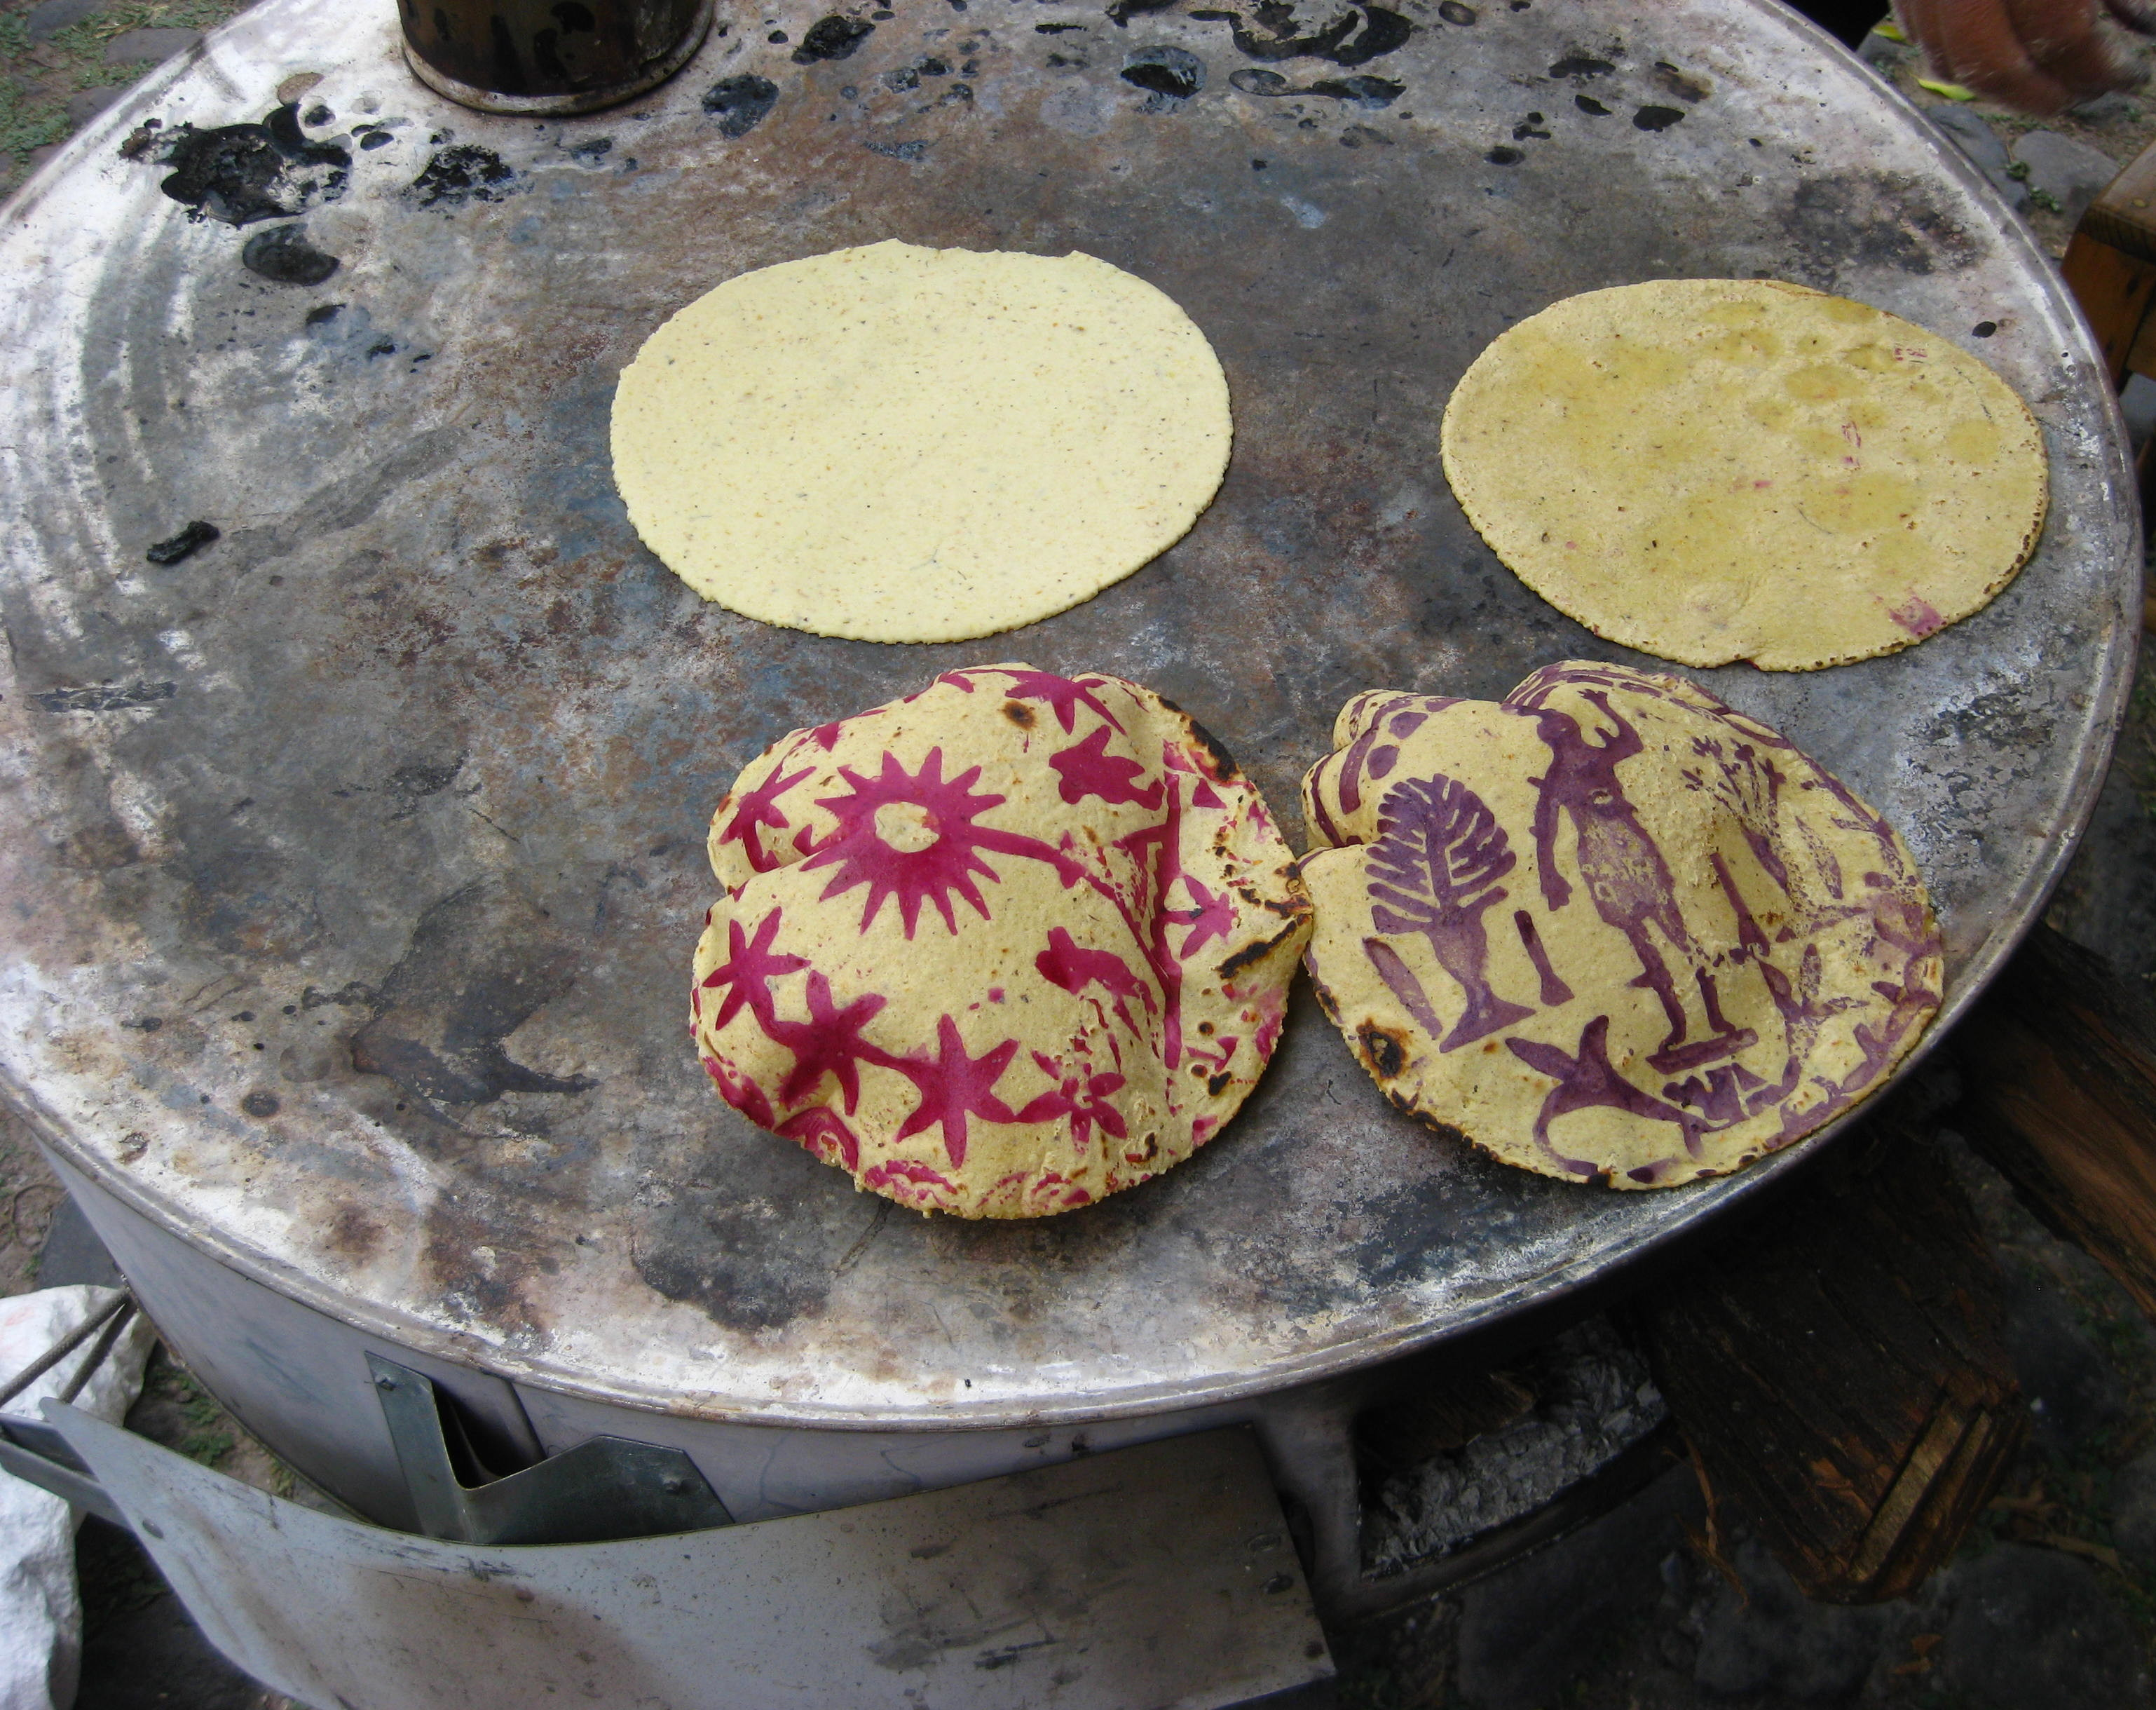 Criollo corn tortillas on the comal, with traditional designs of beet and fruit juices